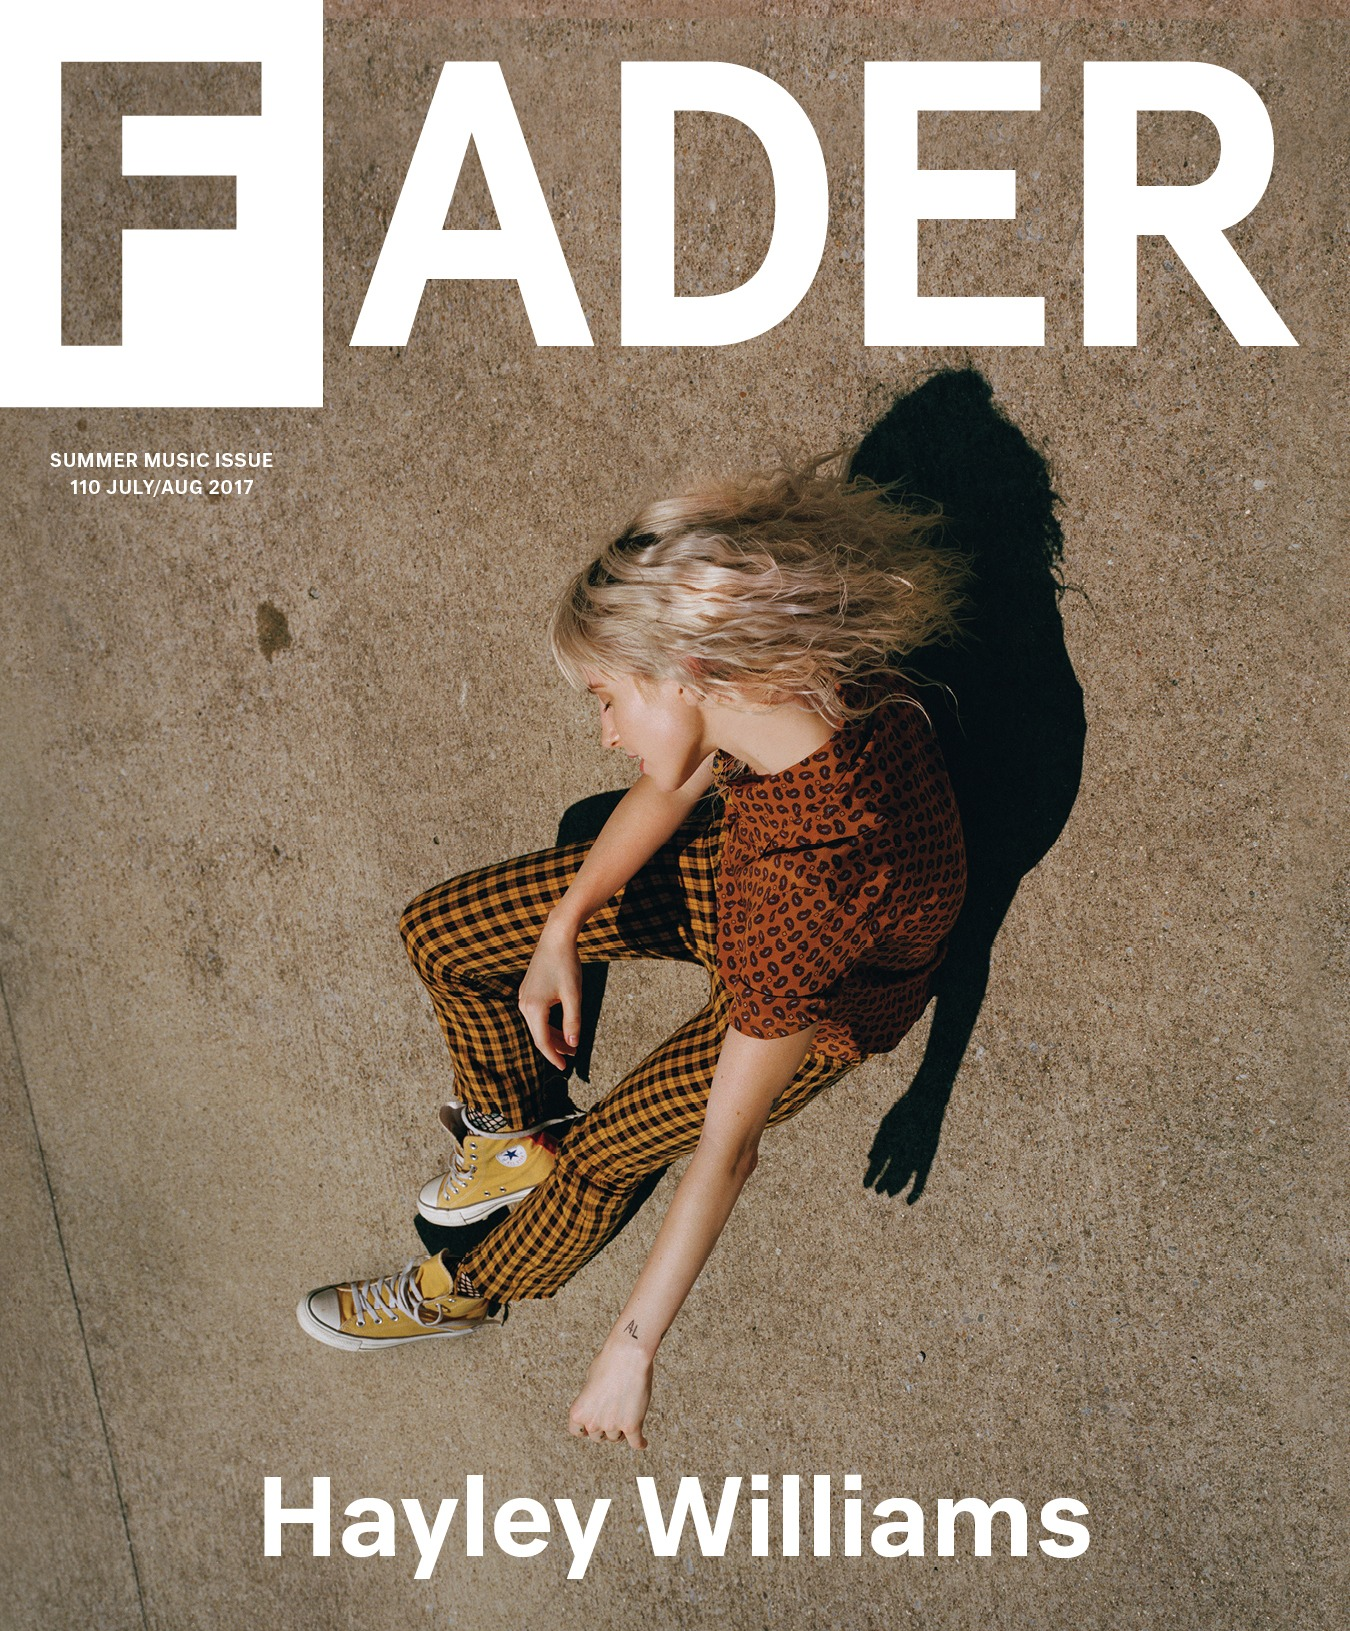 """<a href=""""http://www.thefader.com/2017/06/29/paramore-hayley-williams-cover-story-interview"""" target=""""_Blank"""">THE FADER</a>"""